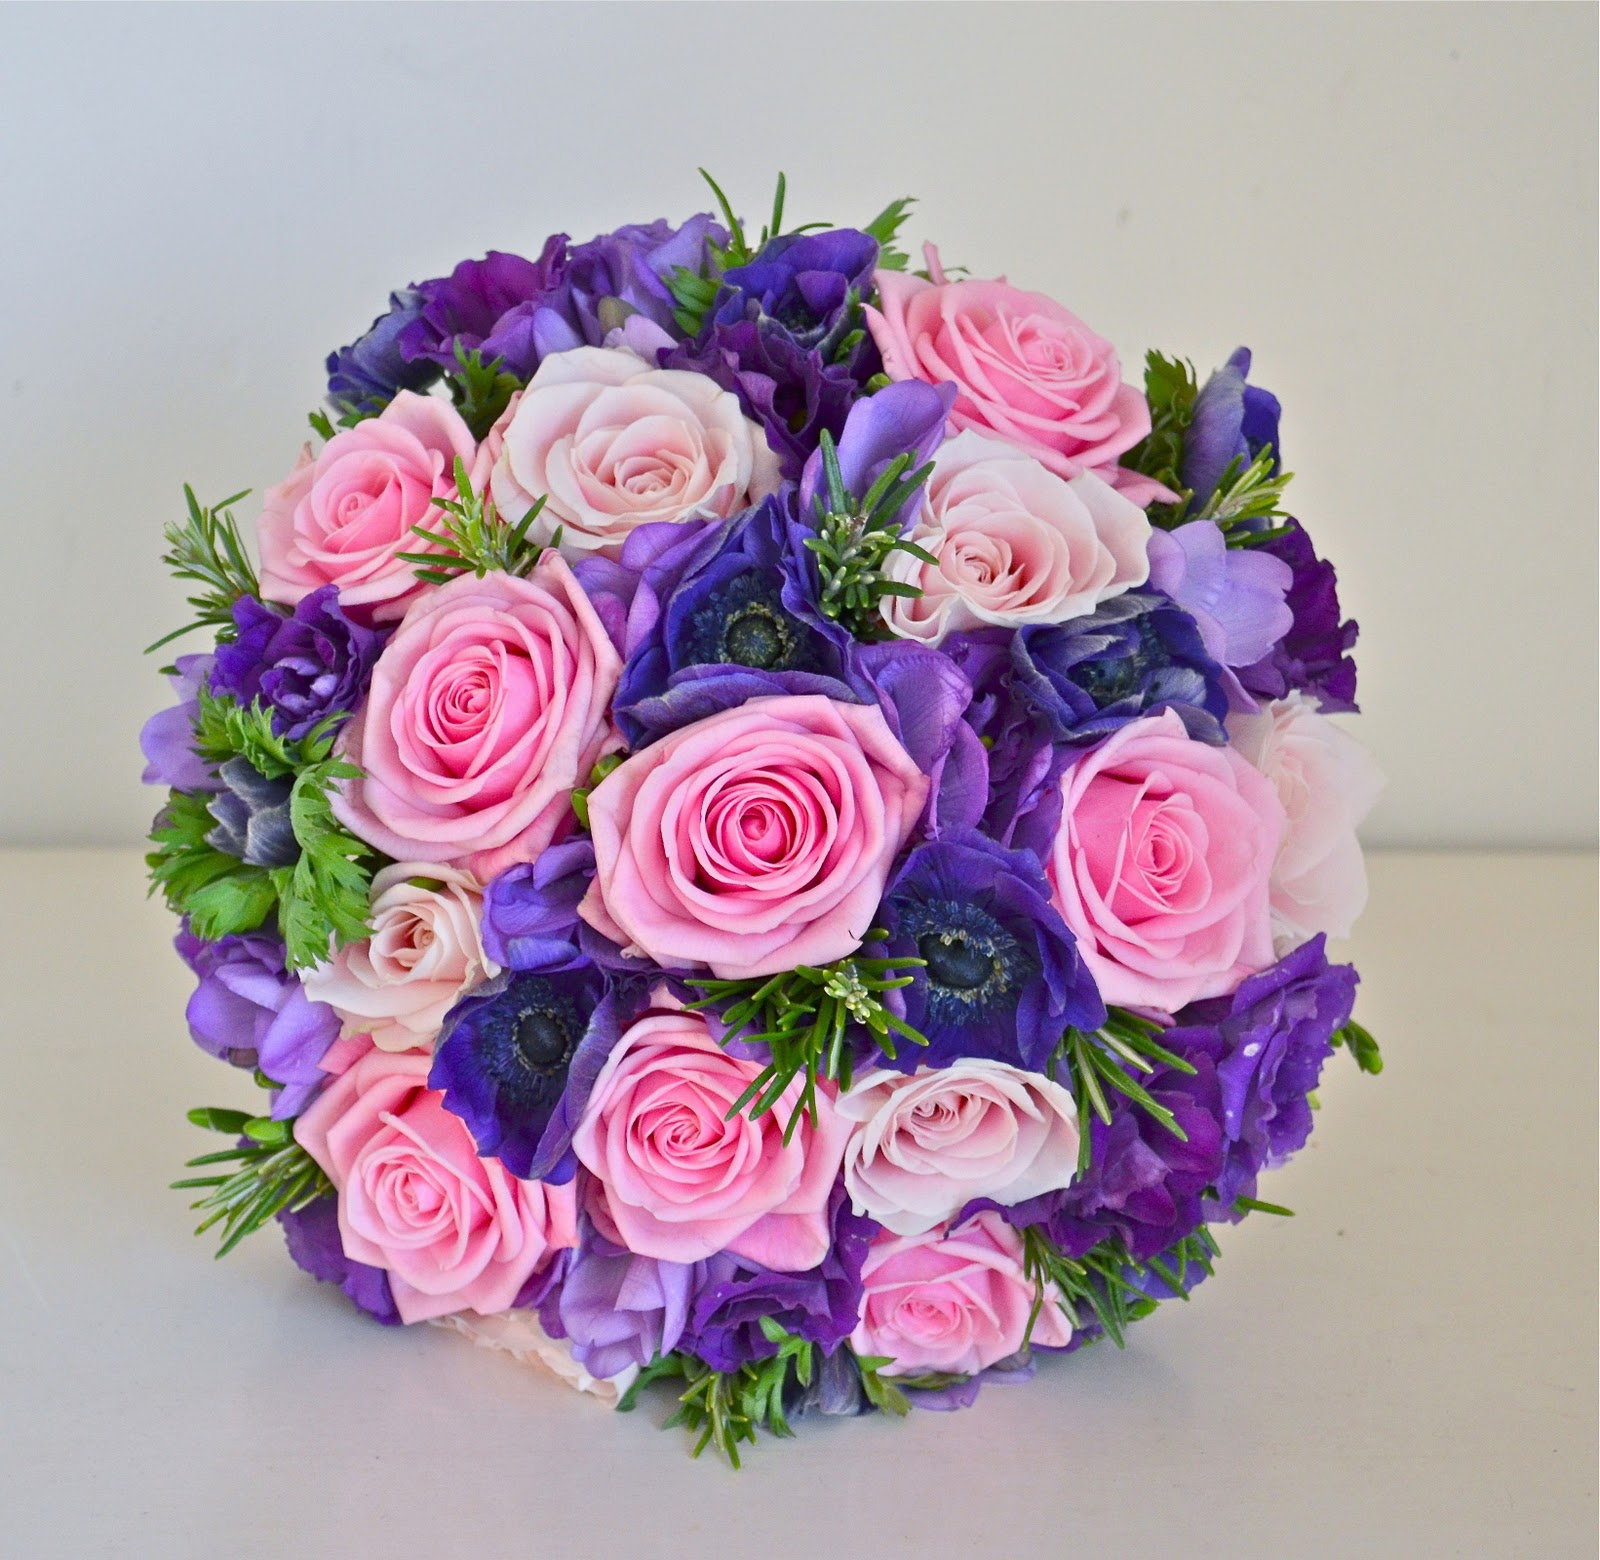 Wedding Flower Bouquets Uk Free Images At